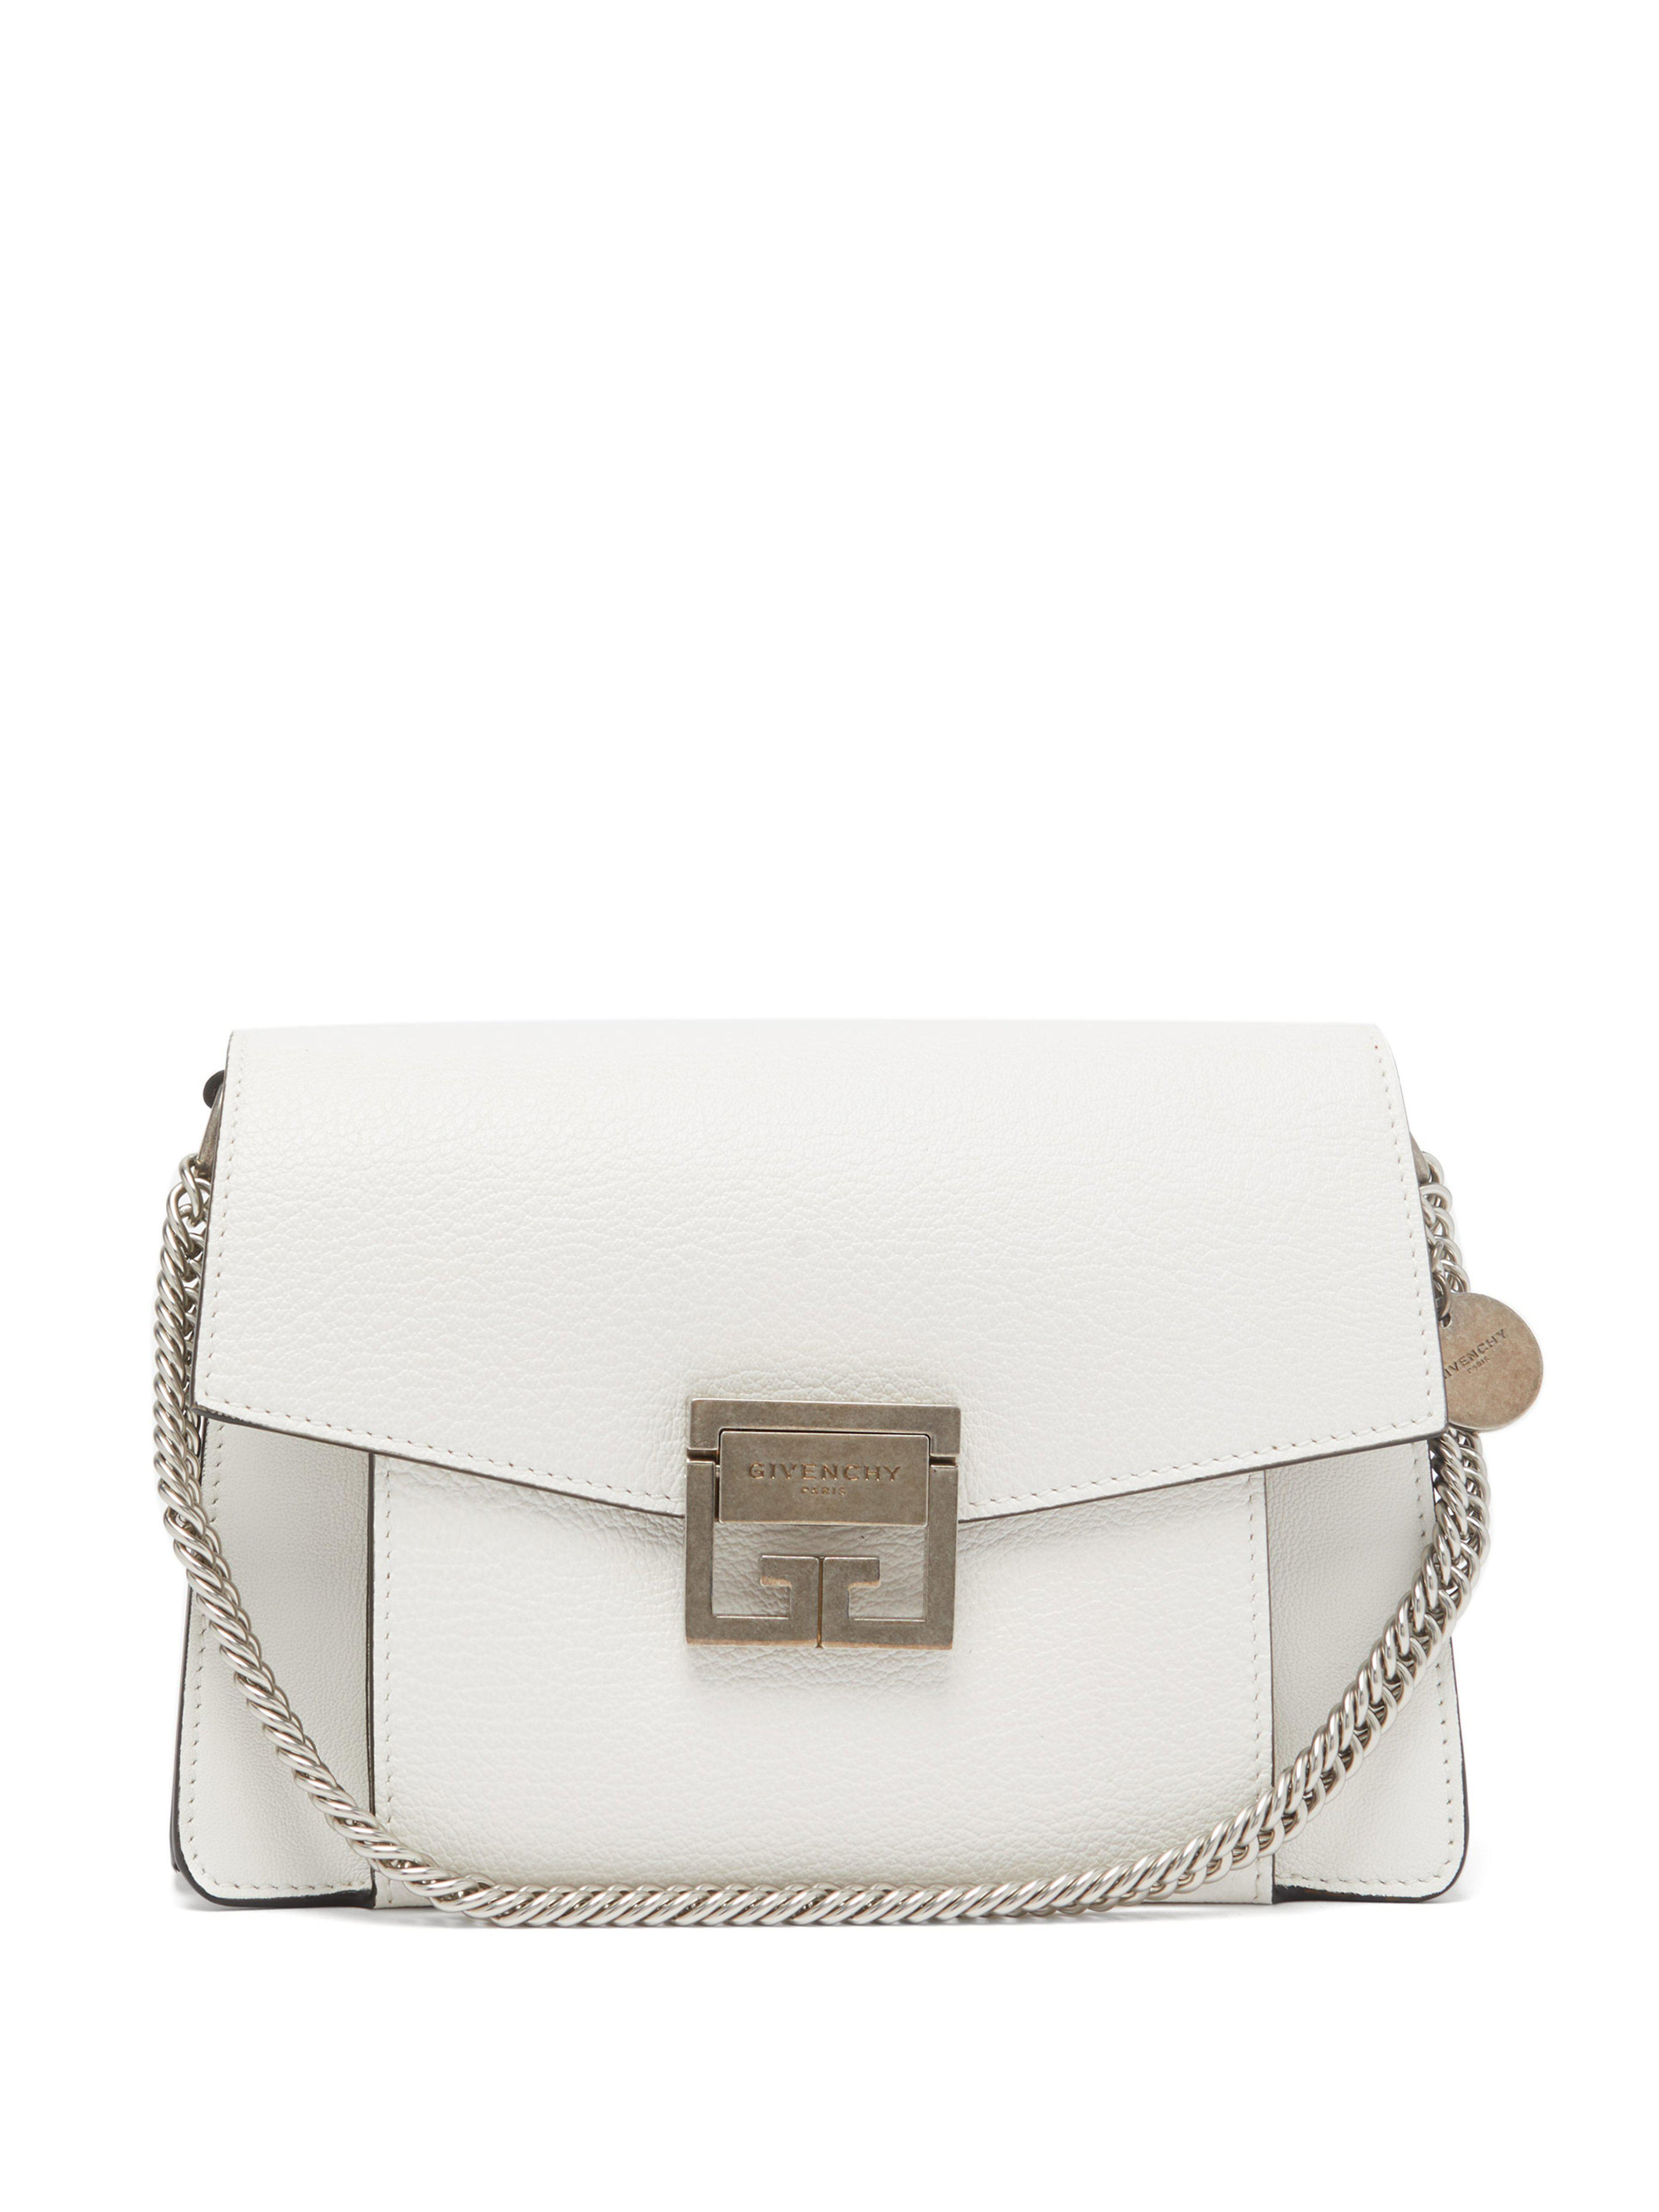 d617c79984a05 Givenchy - White Gv3 Small Leather Cross Body Bag - Lyst. View fullscreen